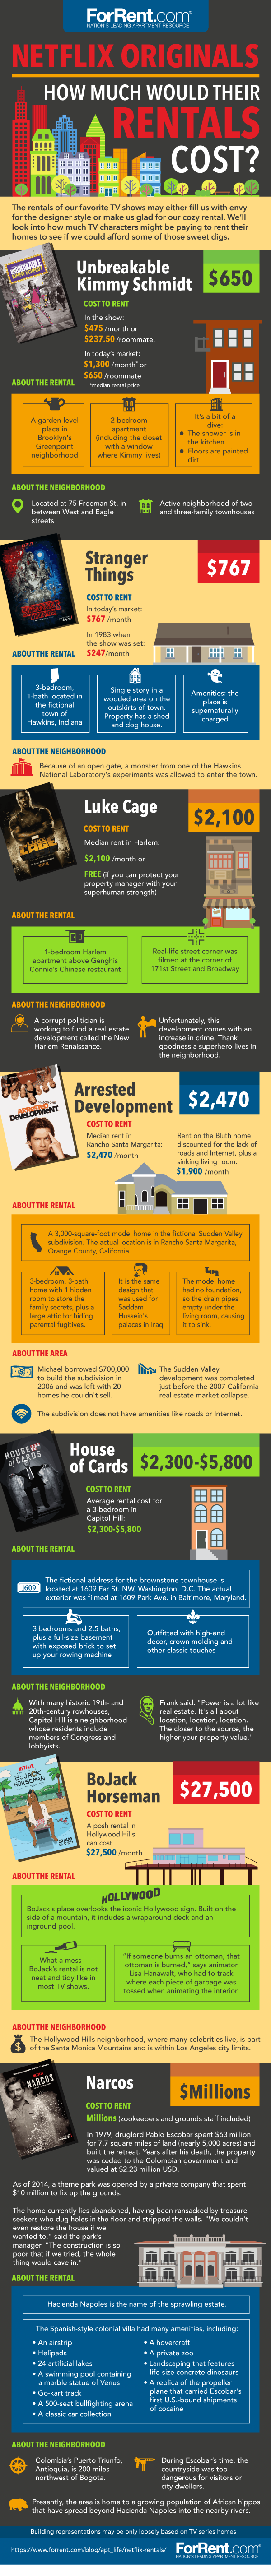 Netflix Originals: How Much Would Their Rentals Cost? #Infographic